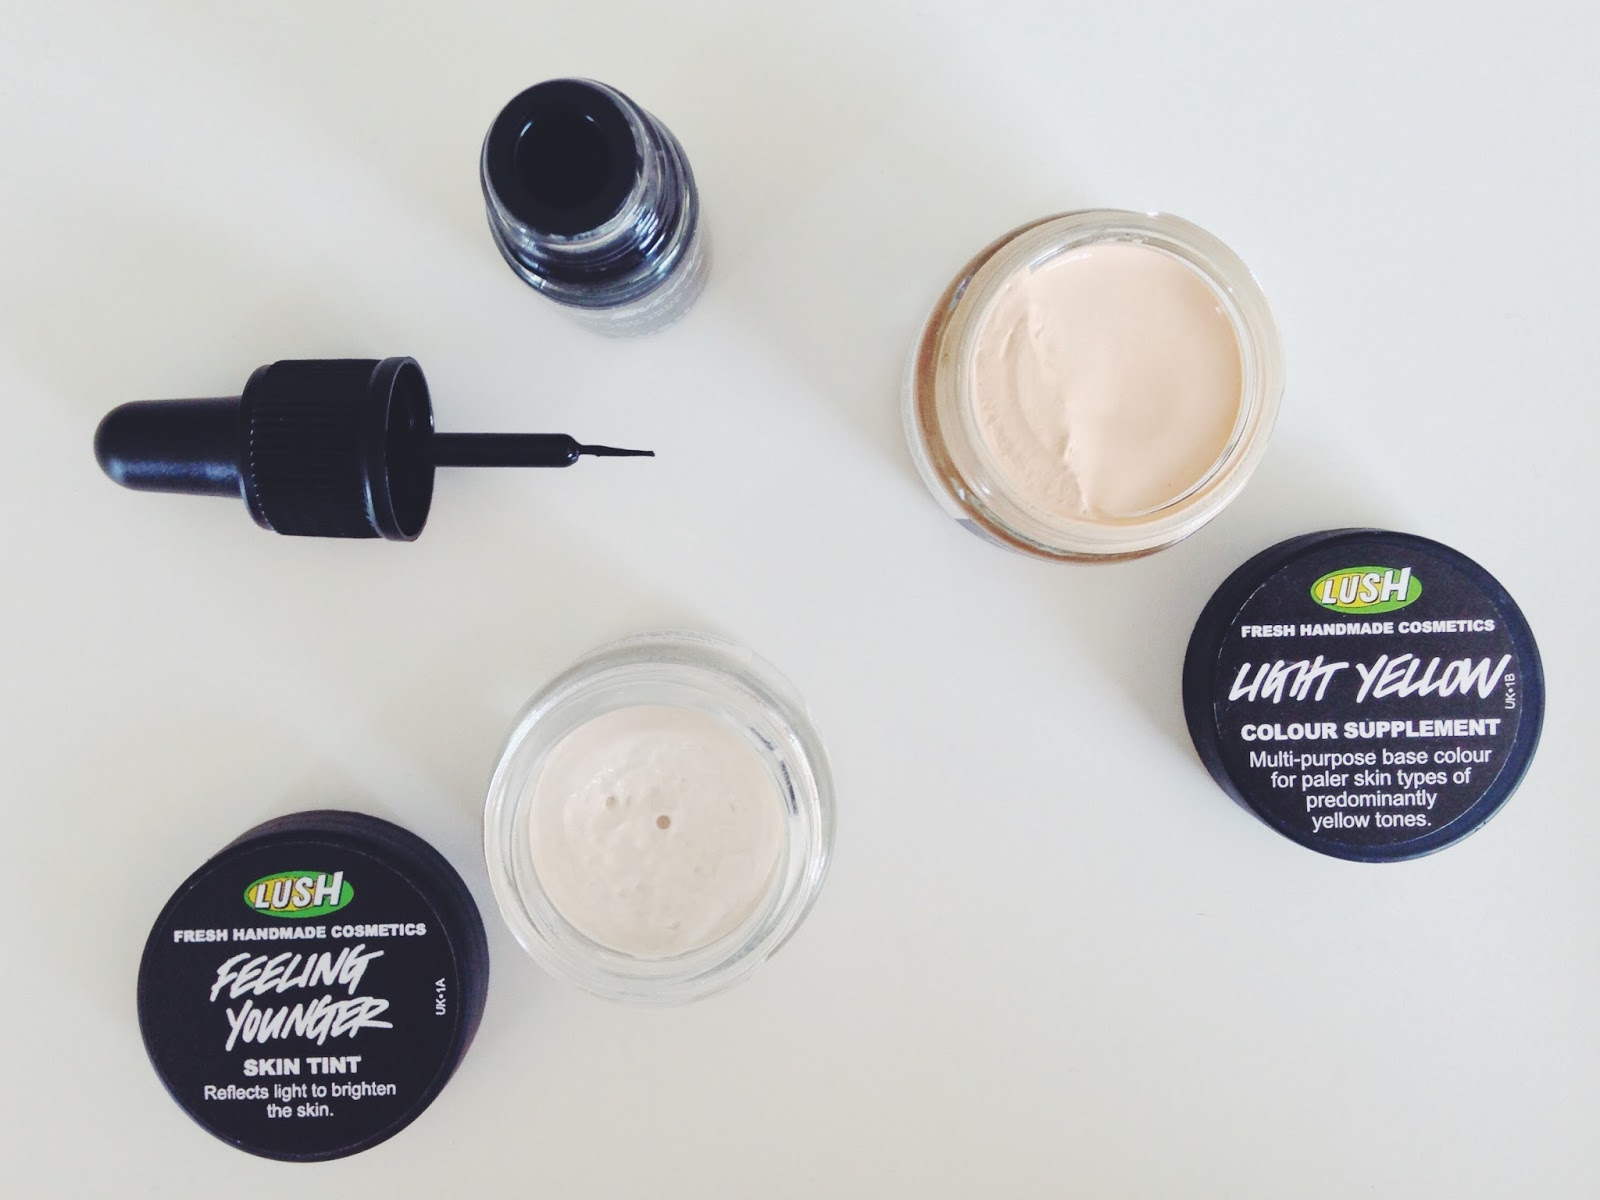 Are Lush products natural?